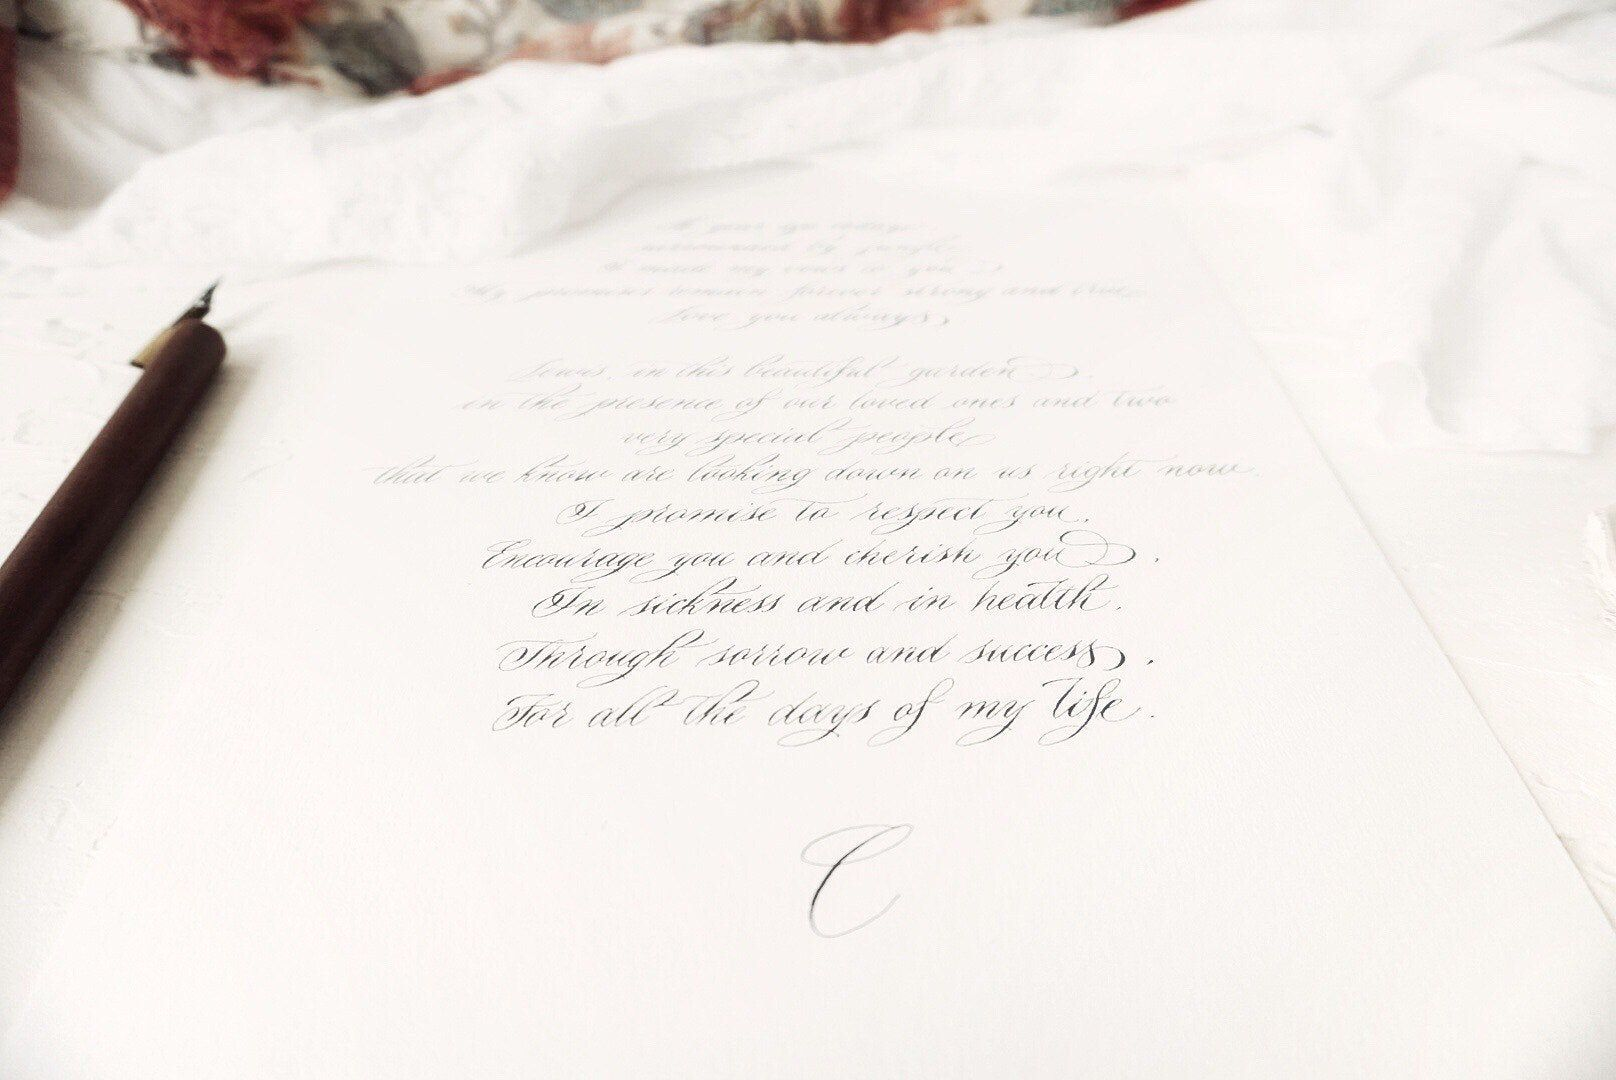 Custom calligraphy for wedding vows, quotes, poems, lyrics